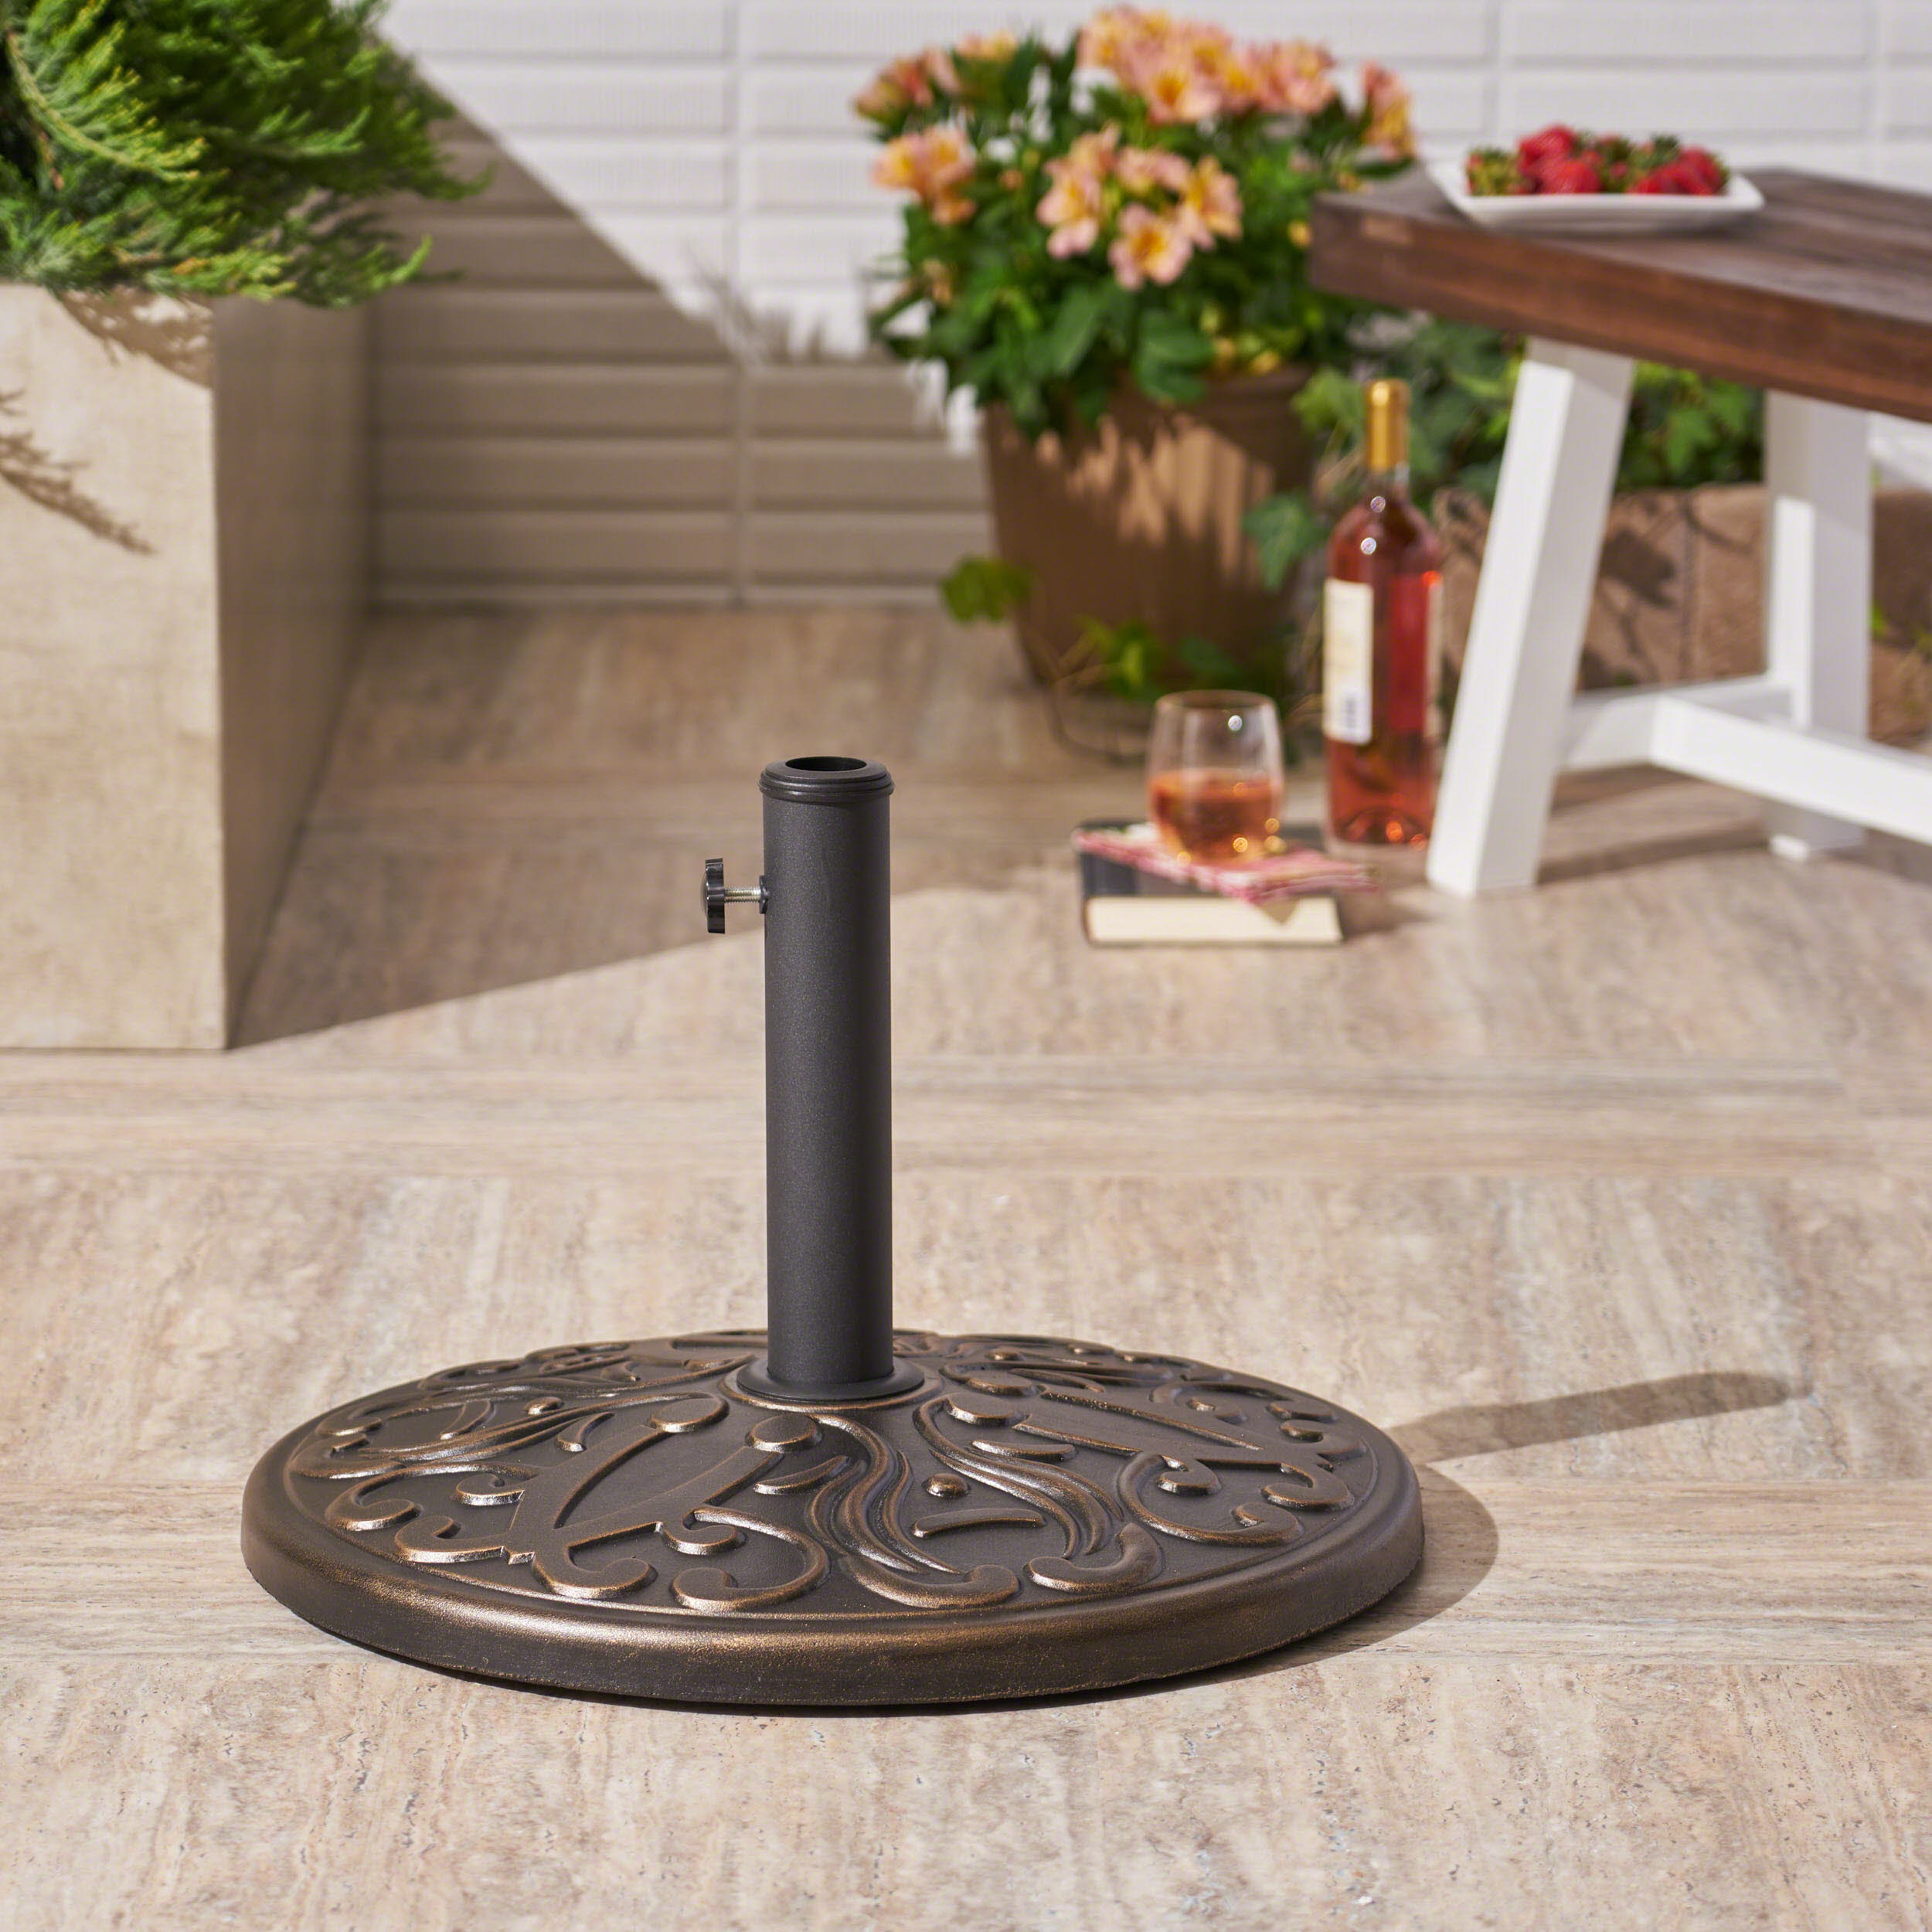 Outdoor 60lb Concrete Circular Umbrella Base, Hammered Dark Copper